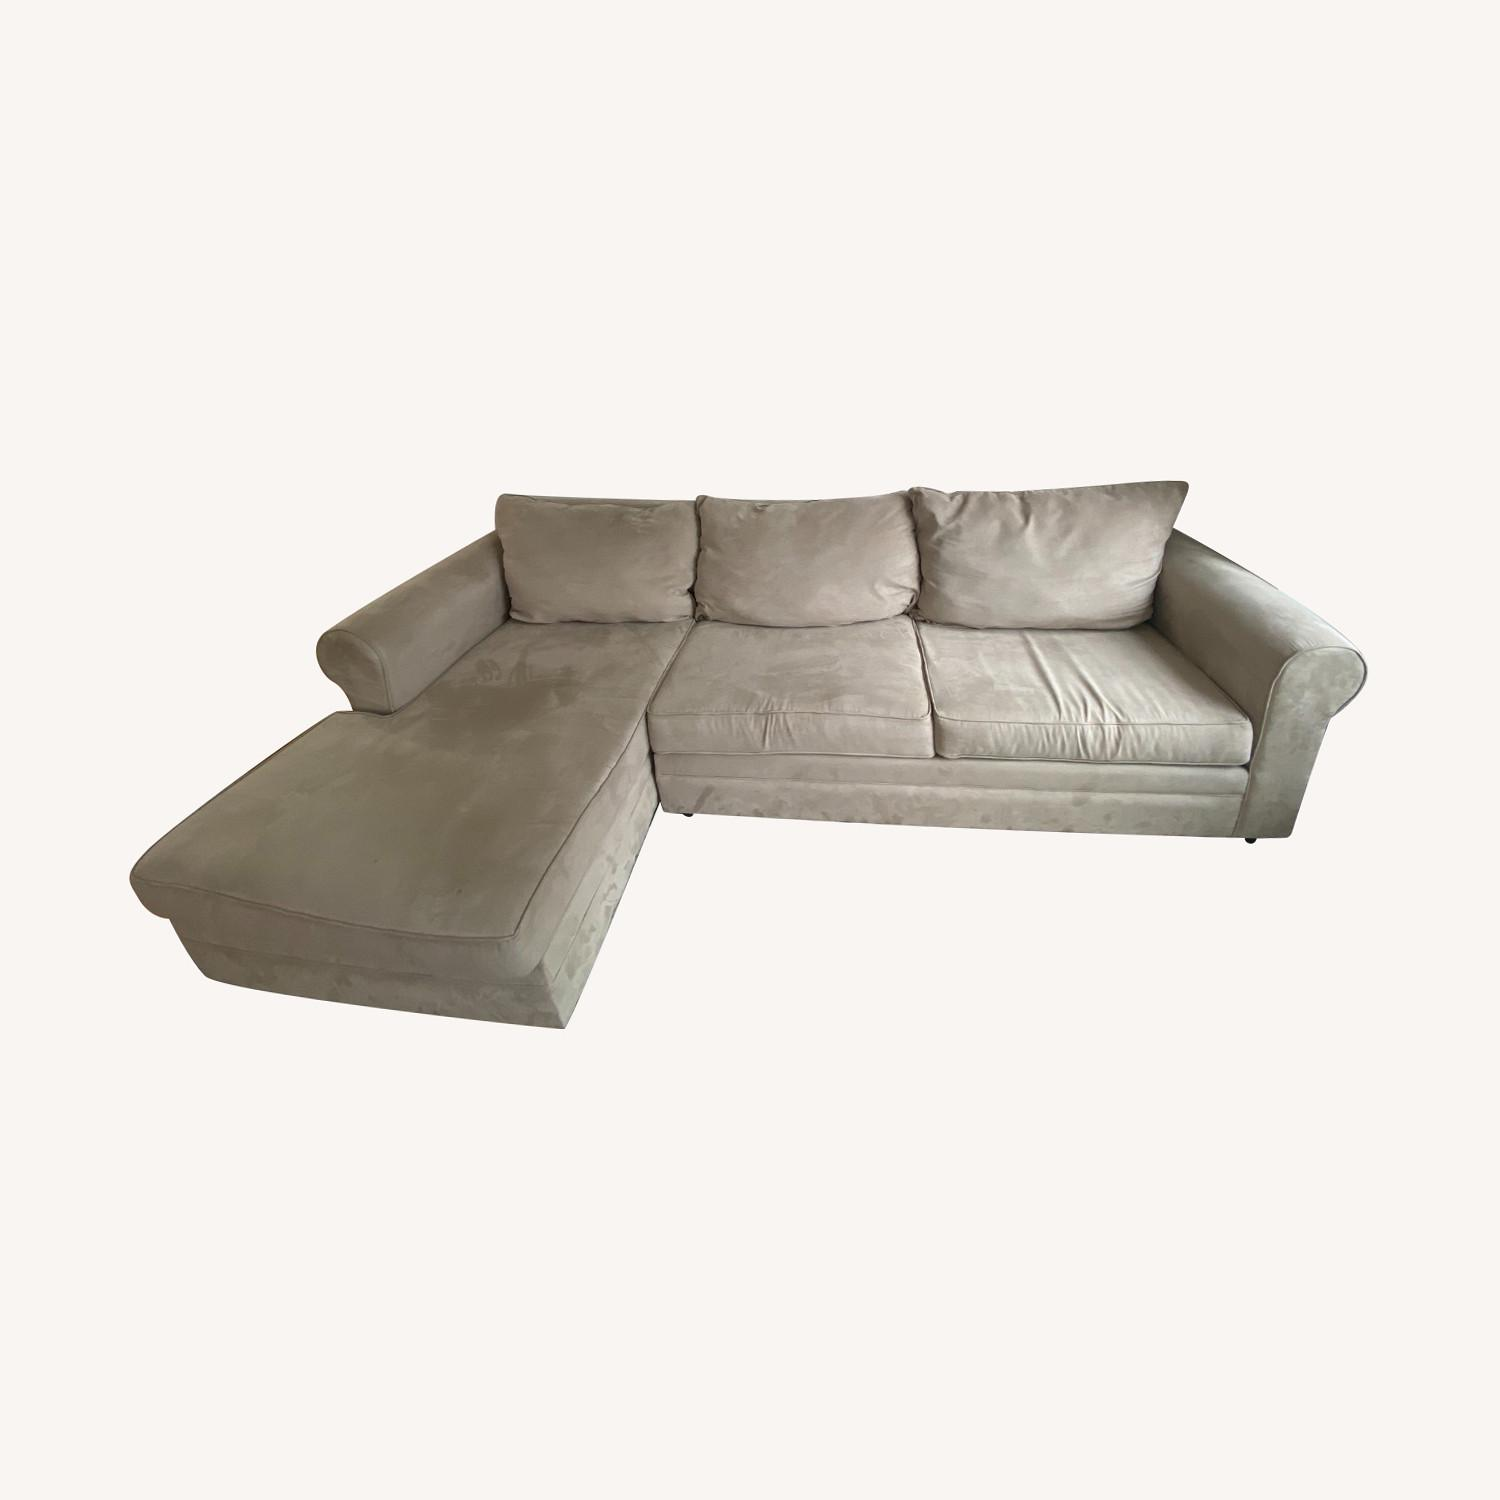 Bob's Discount Furniture Gray Sectional - image-0